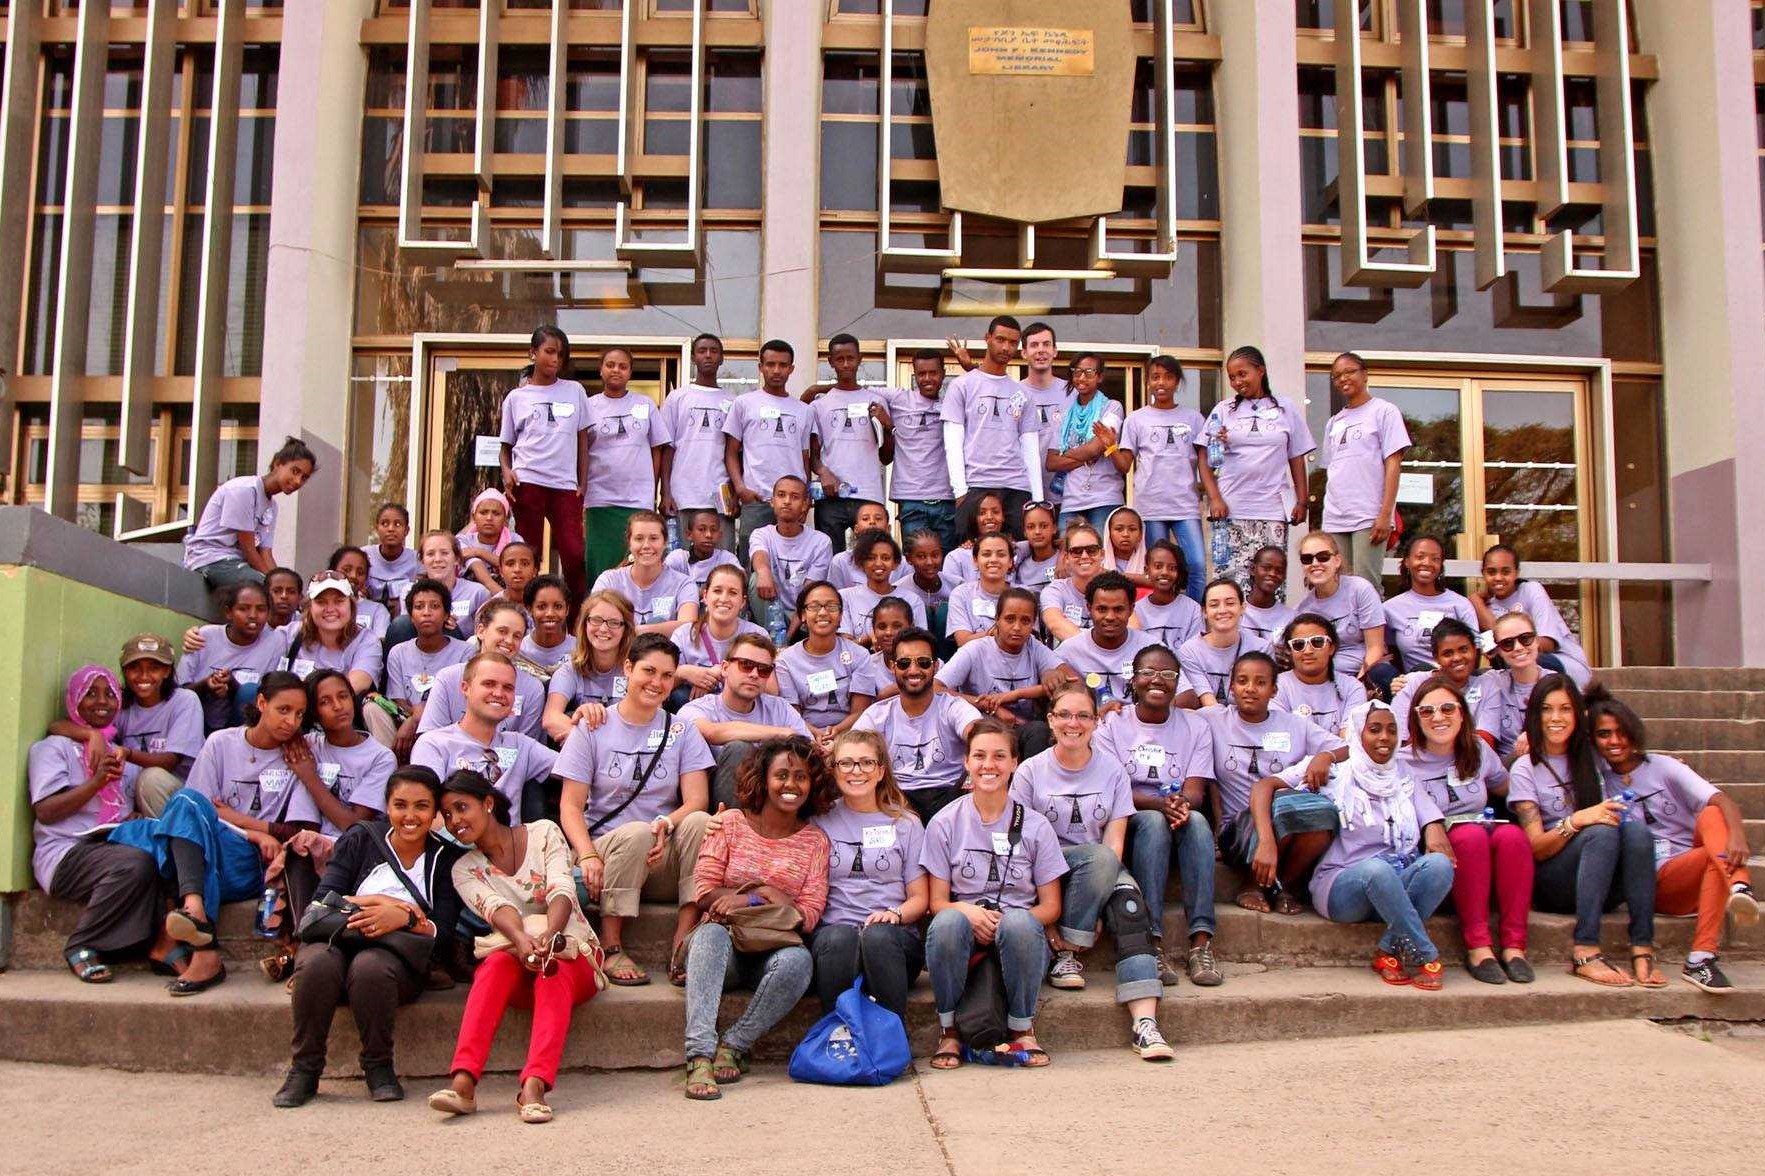 Alesha Klein and others wear purple shirts on the steps of a building in Ethiopia.